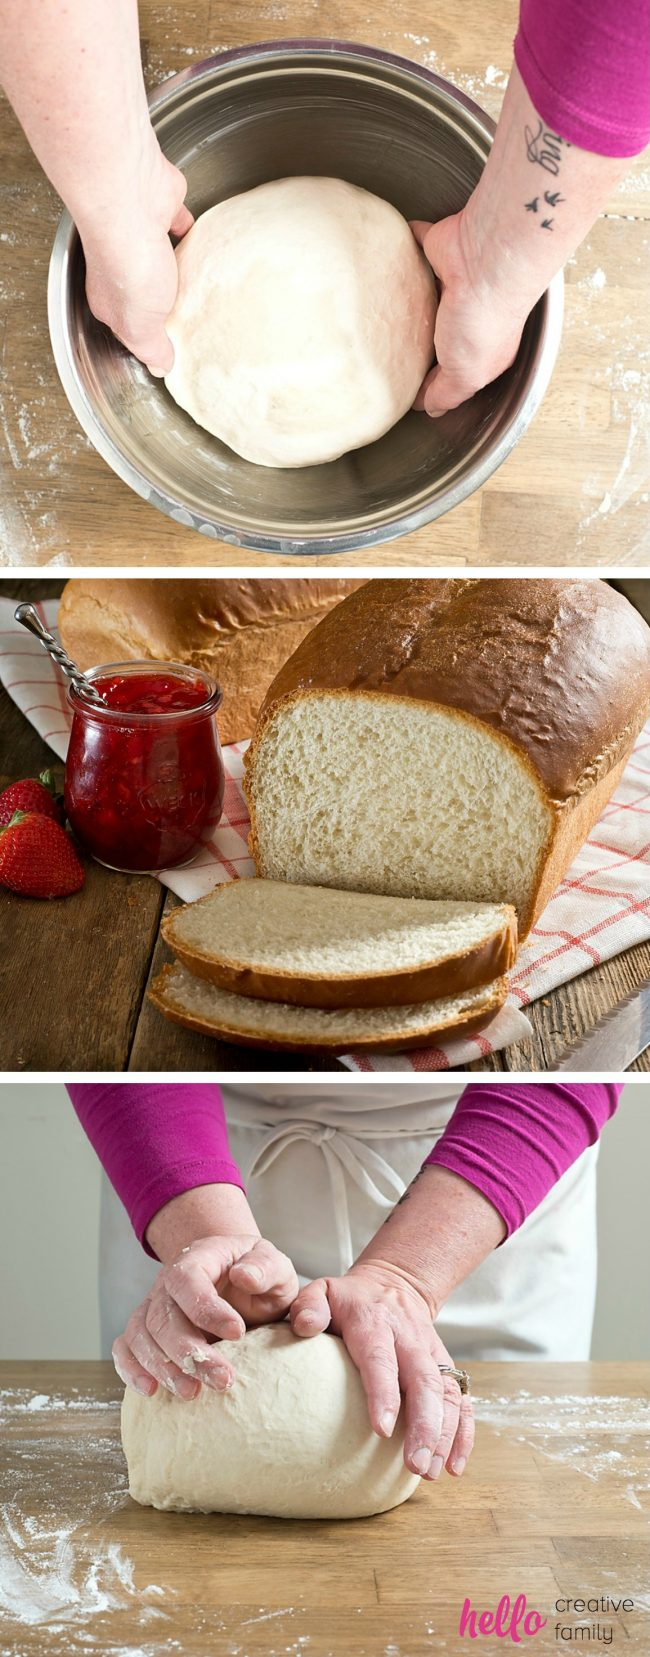 Making homemade bread is easy, once you get into the ritual and habit of doing it! Former bake shop owner, Renee from Hello Creative Family, shares how to make homemade bread perfect for sandwiches and rolls in this new back to basics article. An easy to follow recipe that will guarantee success with every loaf!